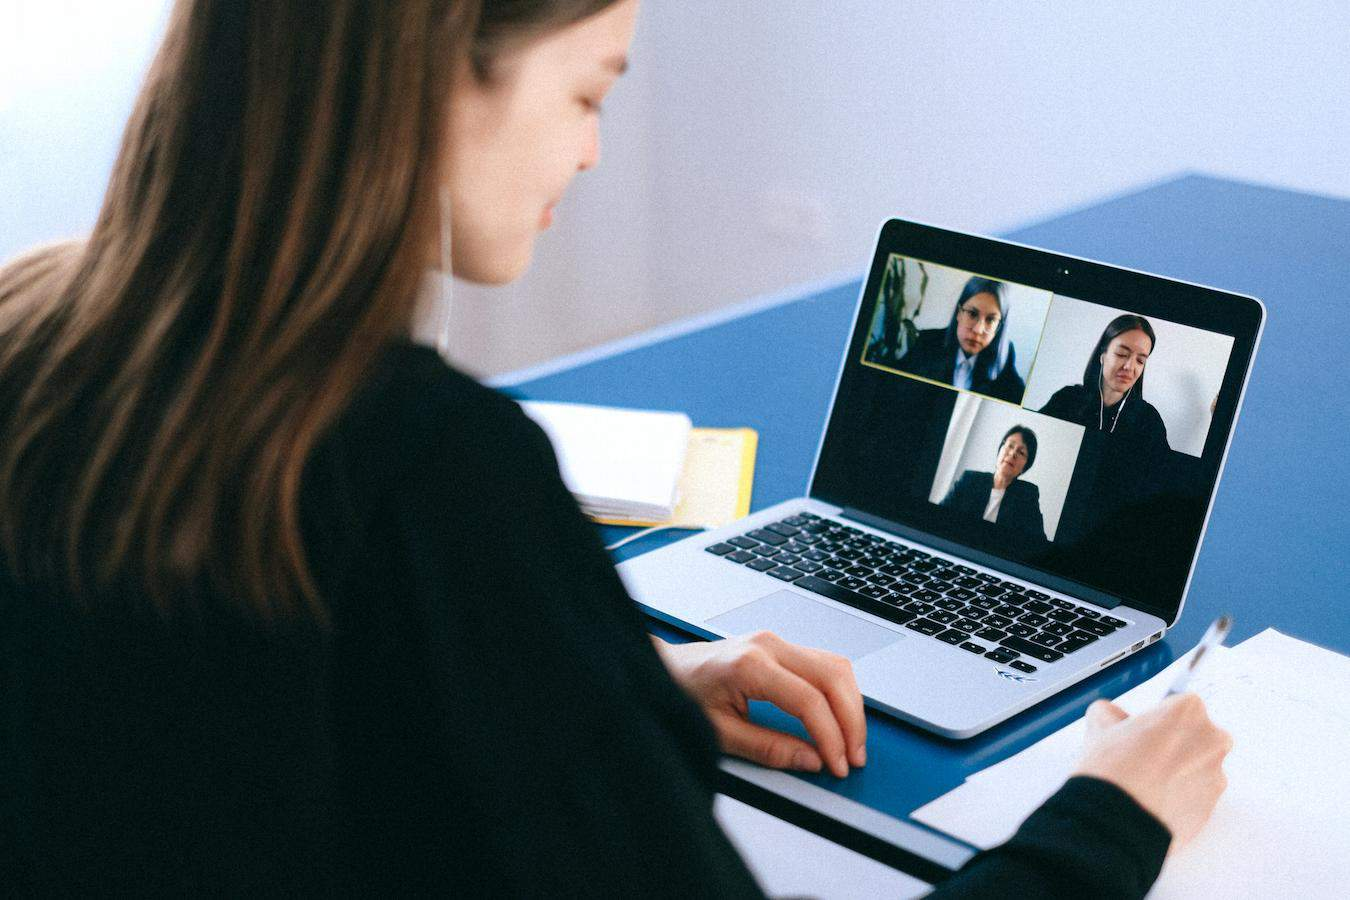 How to ensure people are communicating effectively in virtual meetings